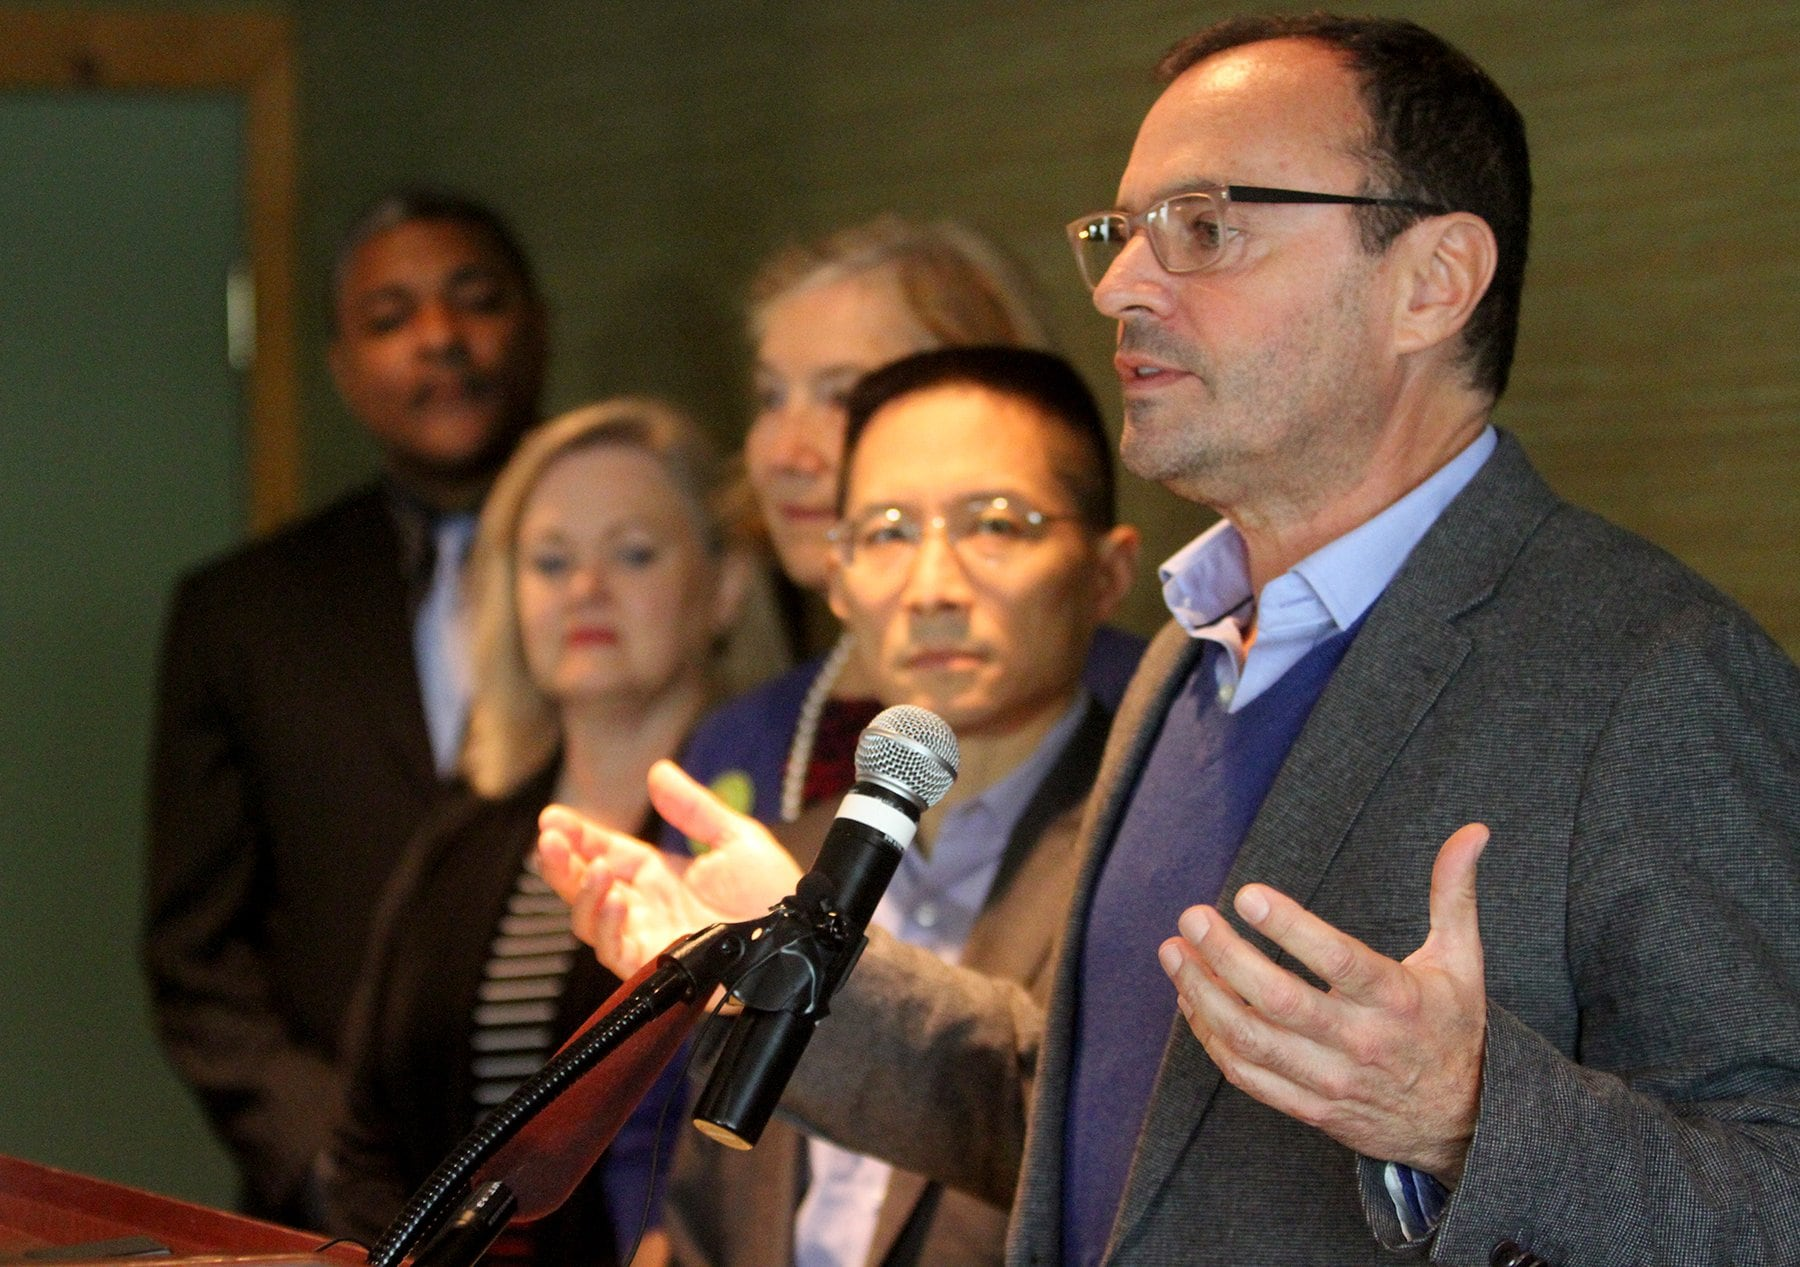 Sandy Brown, President of the Center for Gun Responsibility, headlined a host of new gun control measures they group intends to pursue in 2015. (Seattle Times)